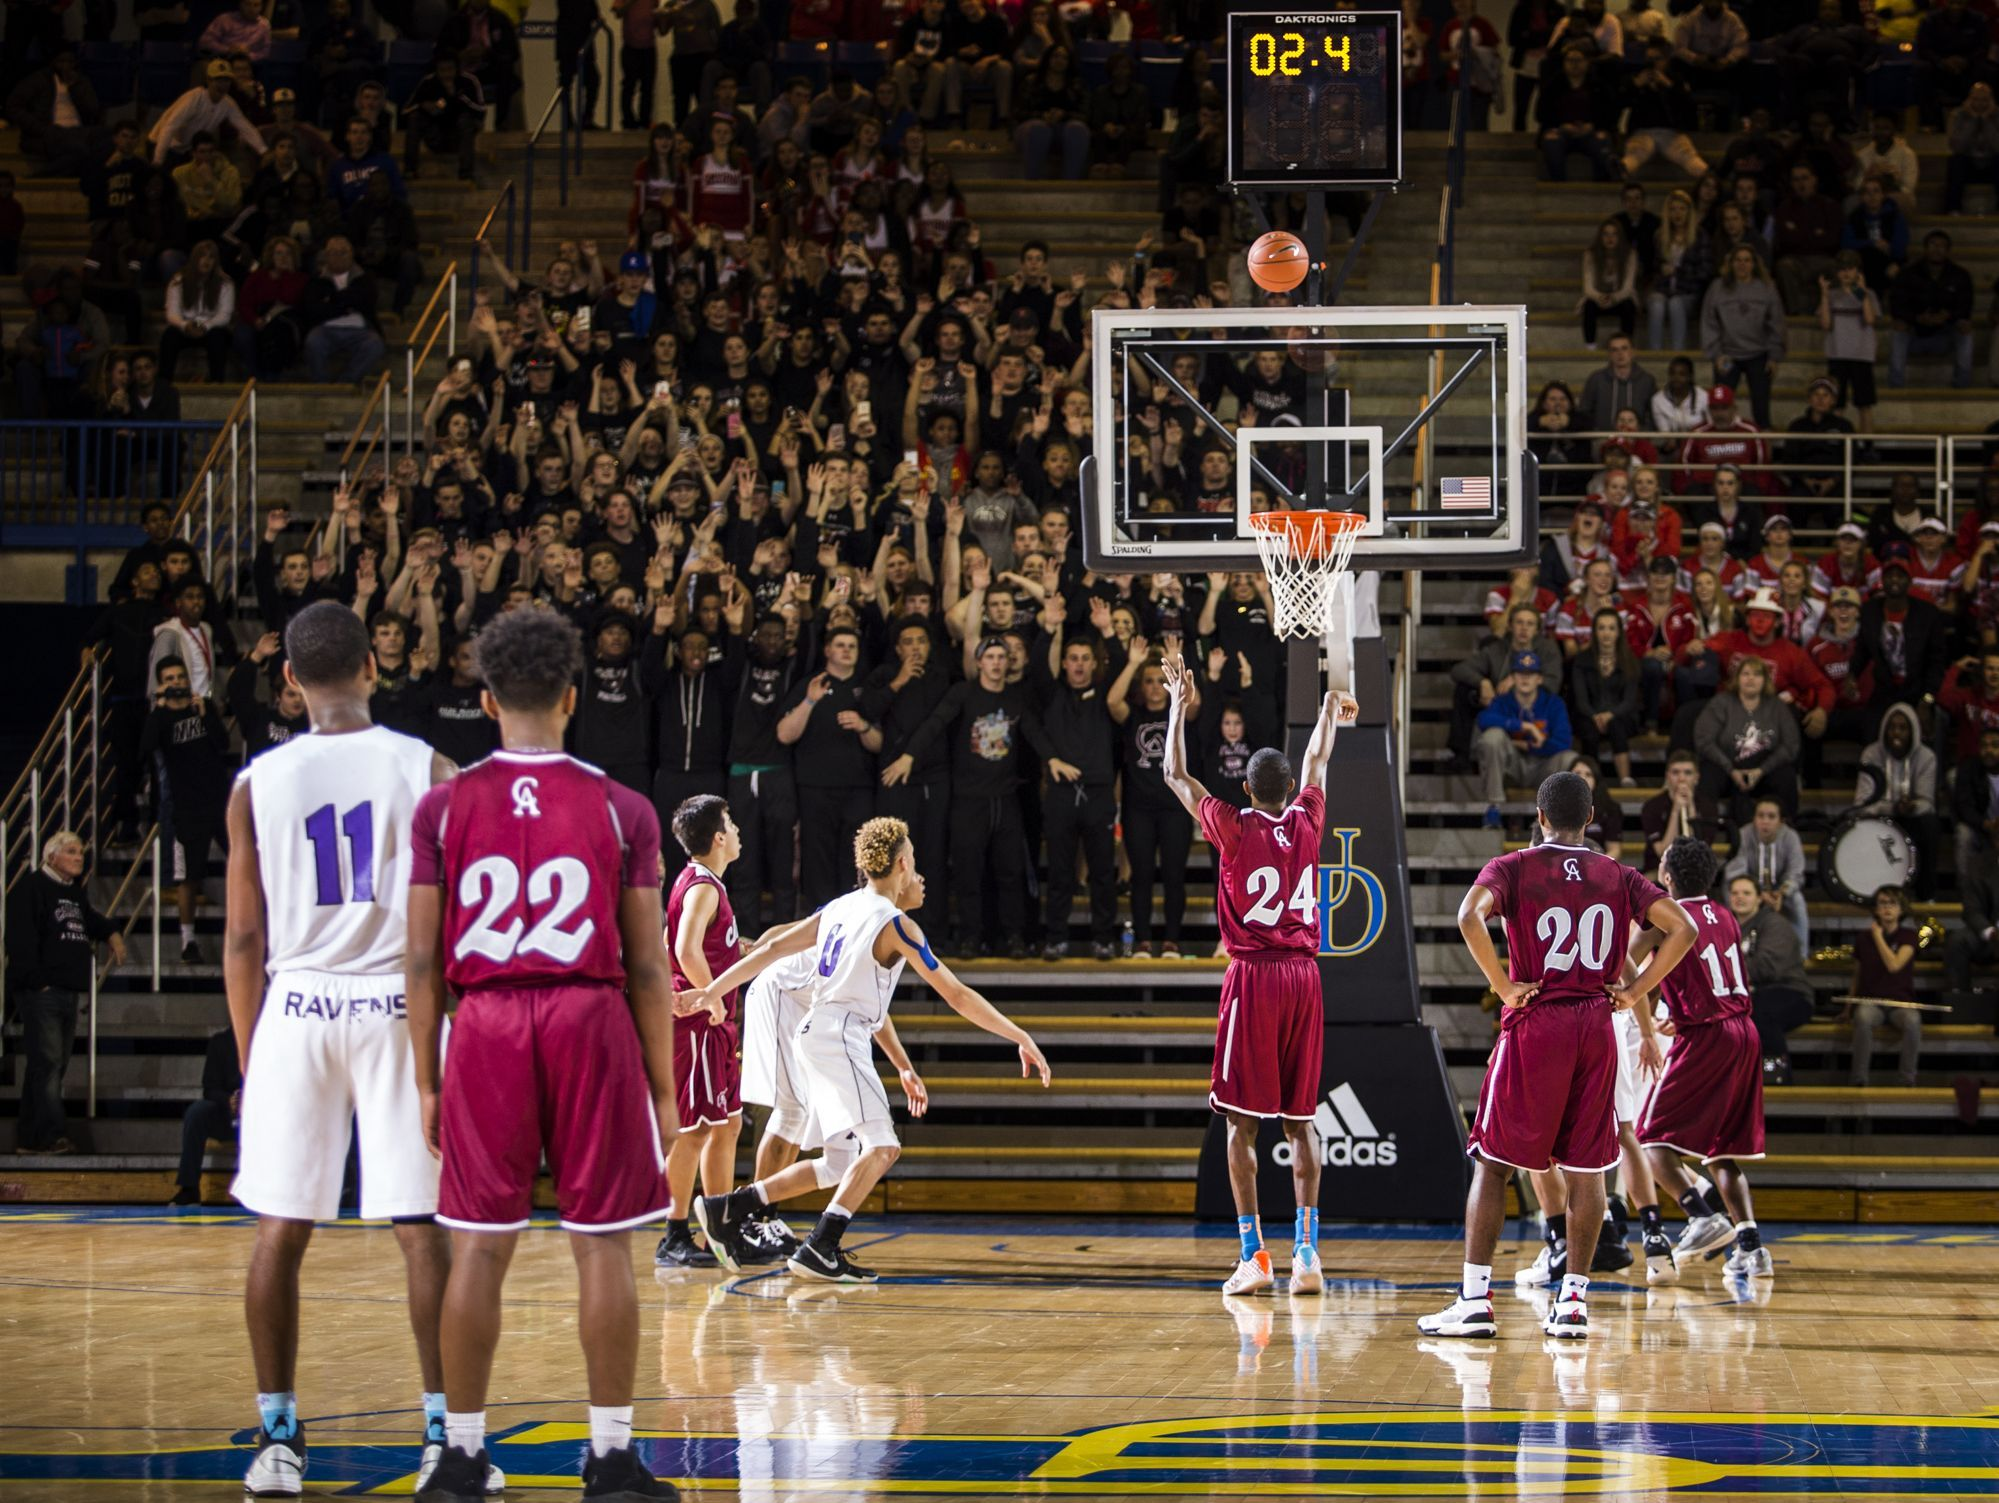 Caravel's O'Koye Parker hits the game-winning free throw in the second half of Caravel Academy's 48-47 win over St. Thomas More Academy in the DIAA Boy's State Basketball Tournament semi-finals at the Bob Carpenter Center in Newark on Thursday evening.